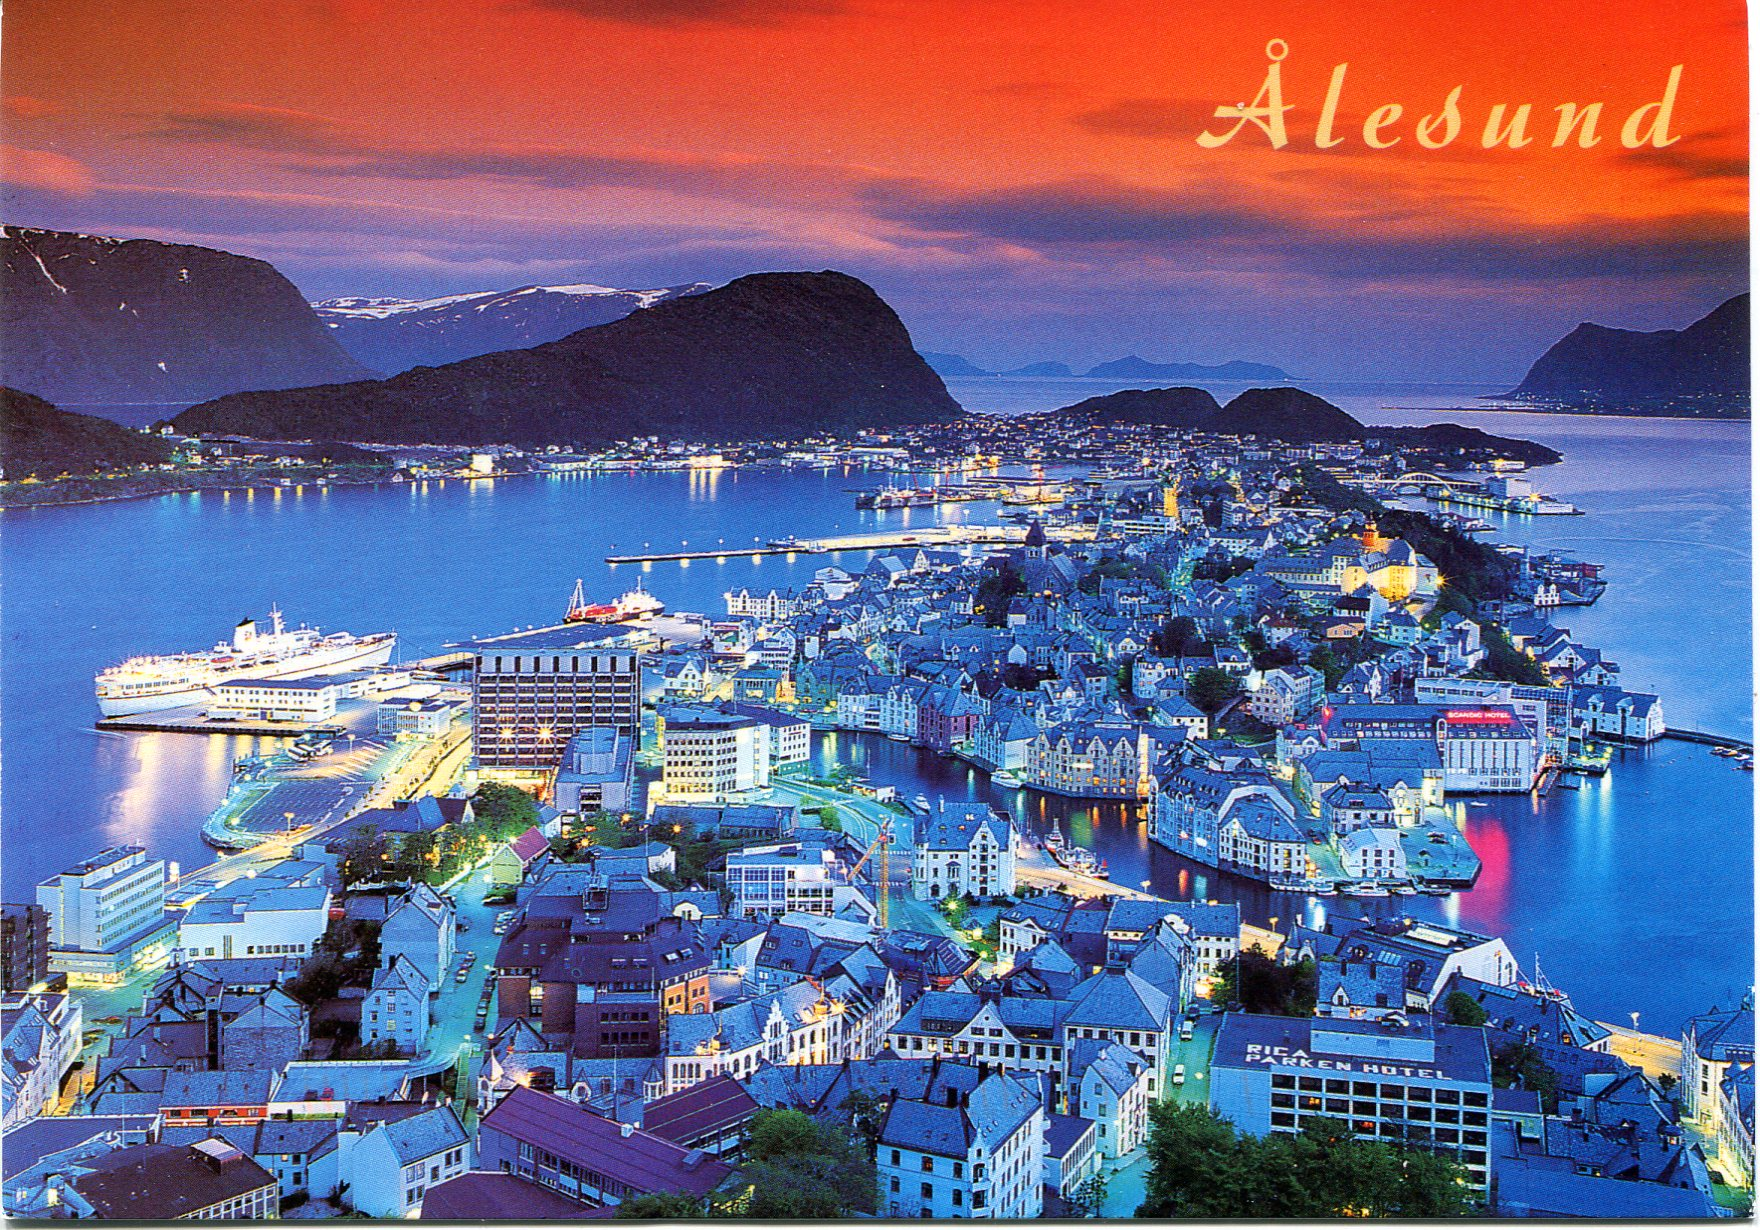 aalesund women Norway - aalesund fixtures, live scores, results, statistics, squad, transfers, trophies, venue, photos, videos and news.